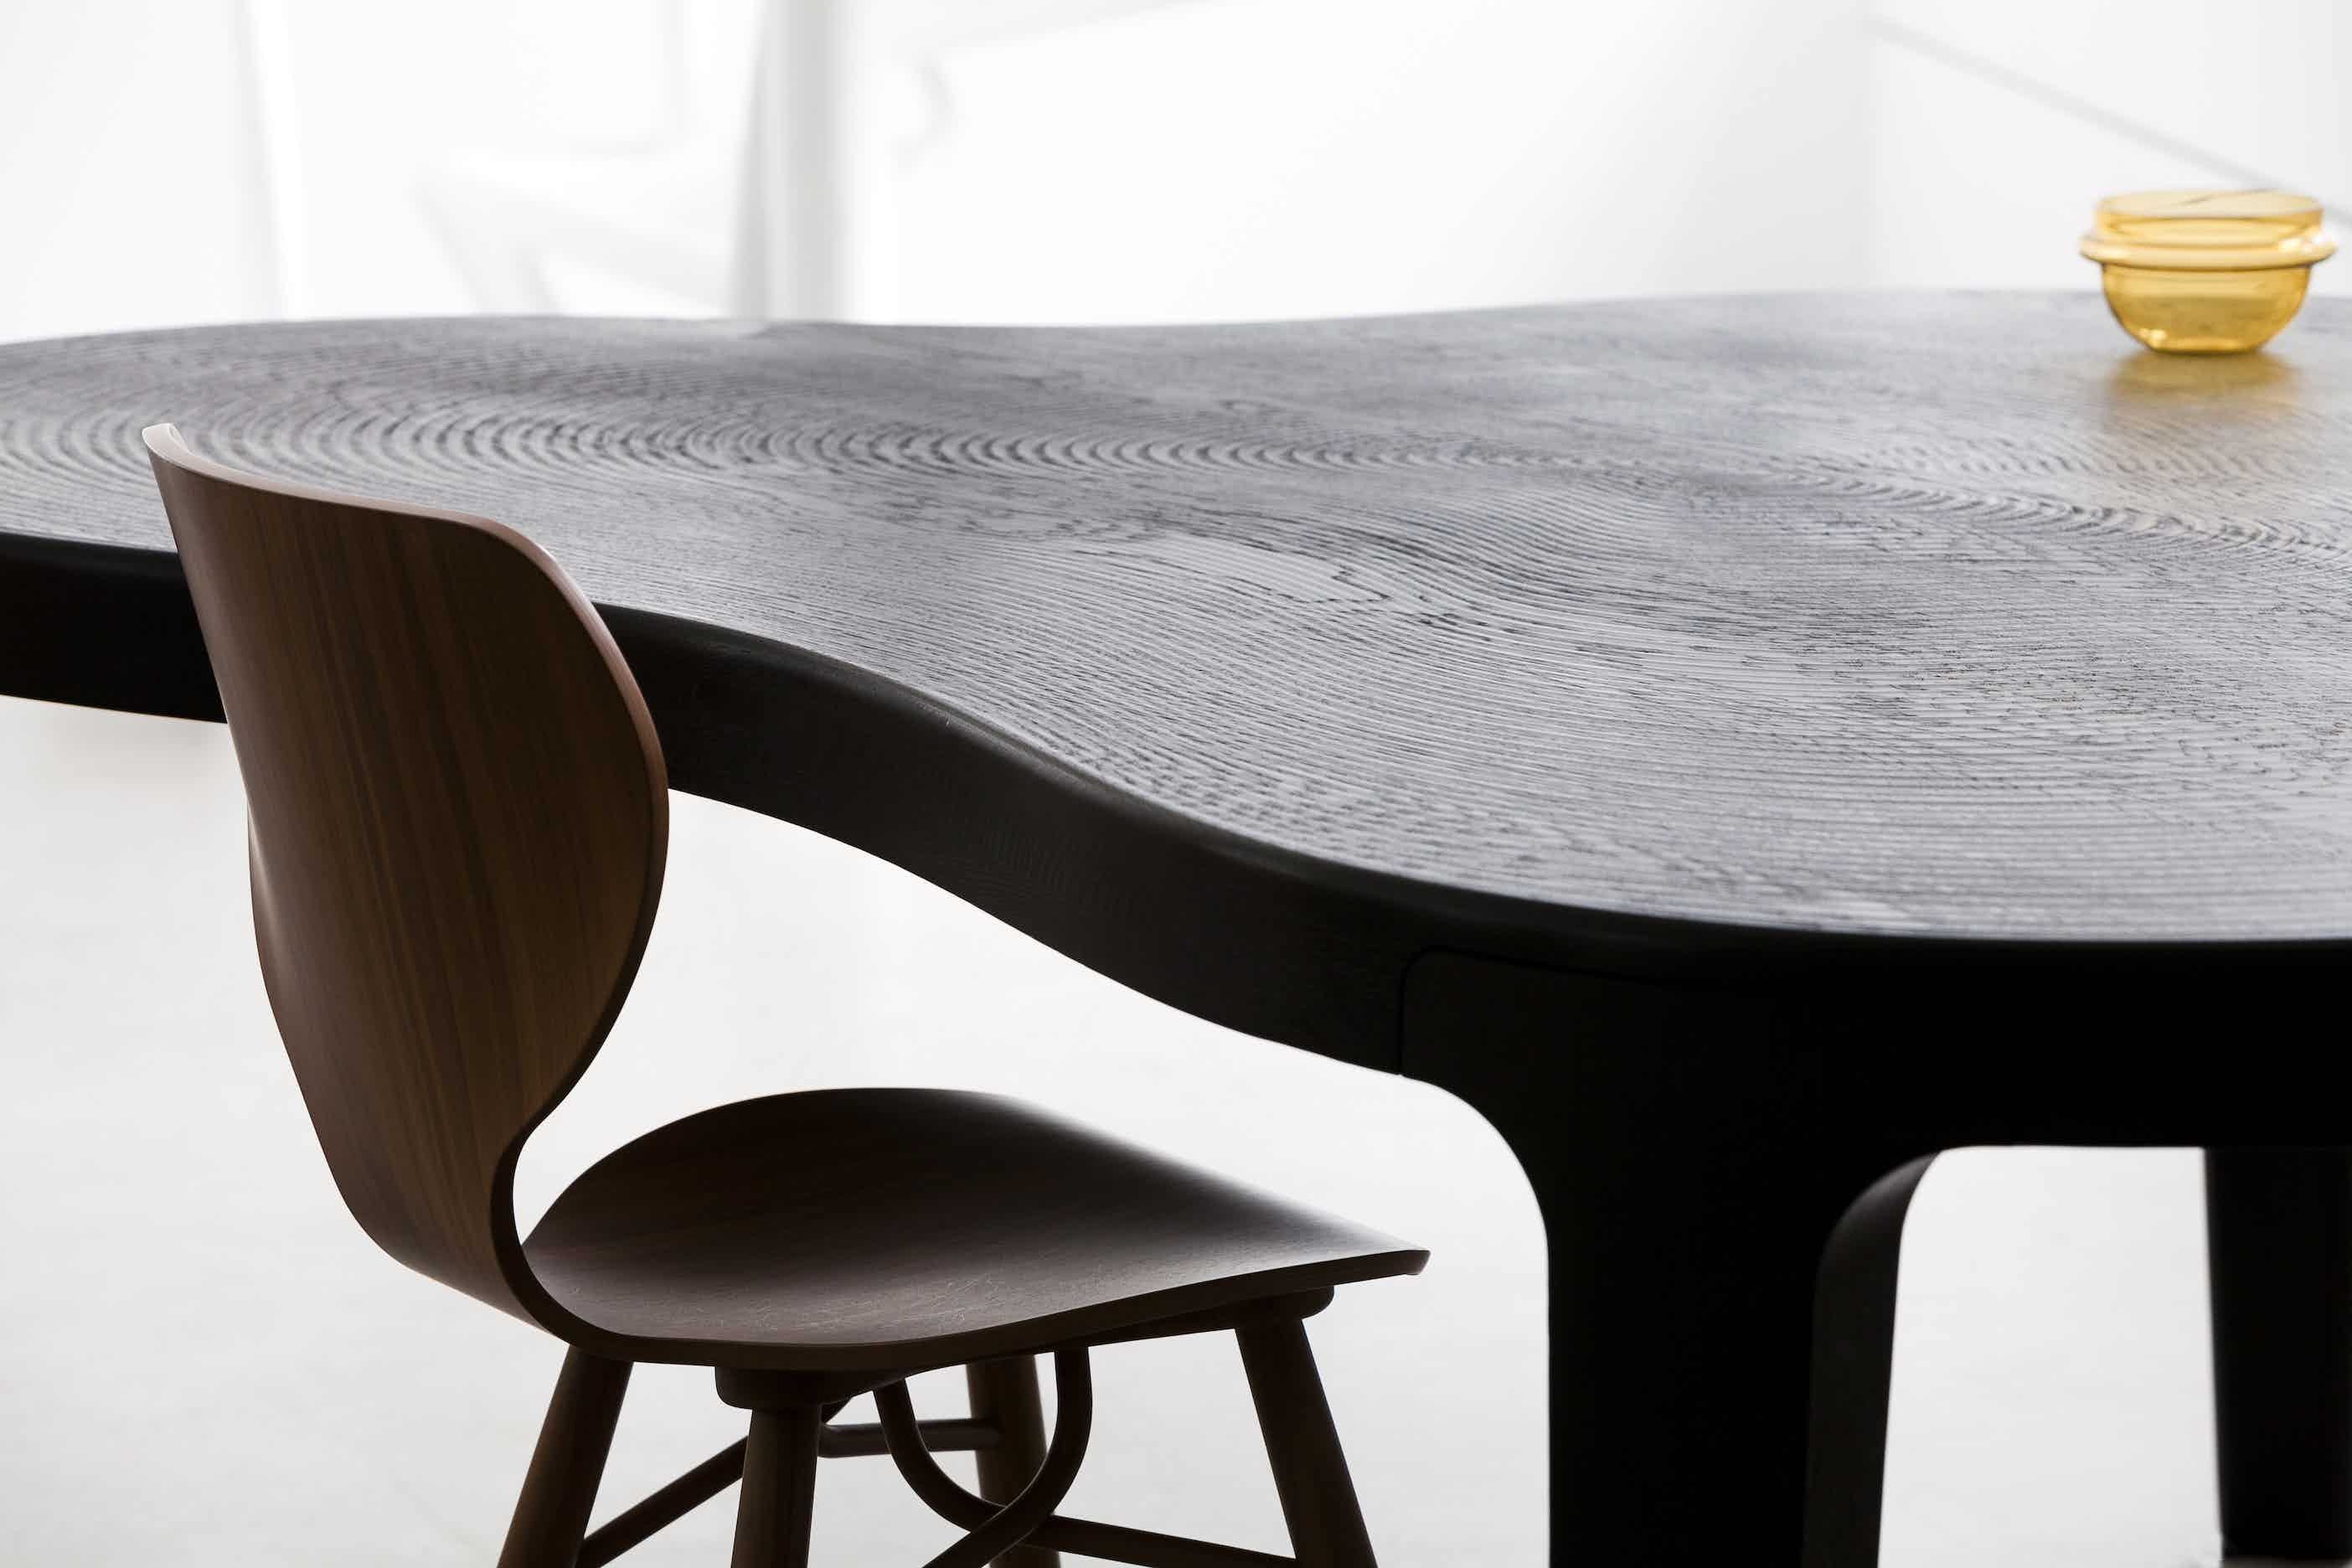 Linteloo-detail-isola-table-institu-haute-living